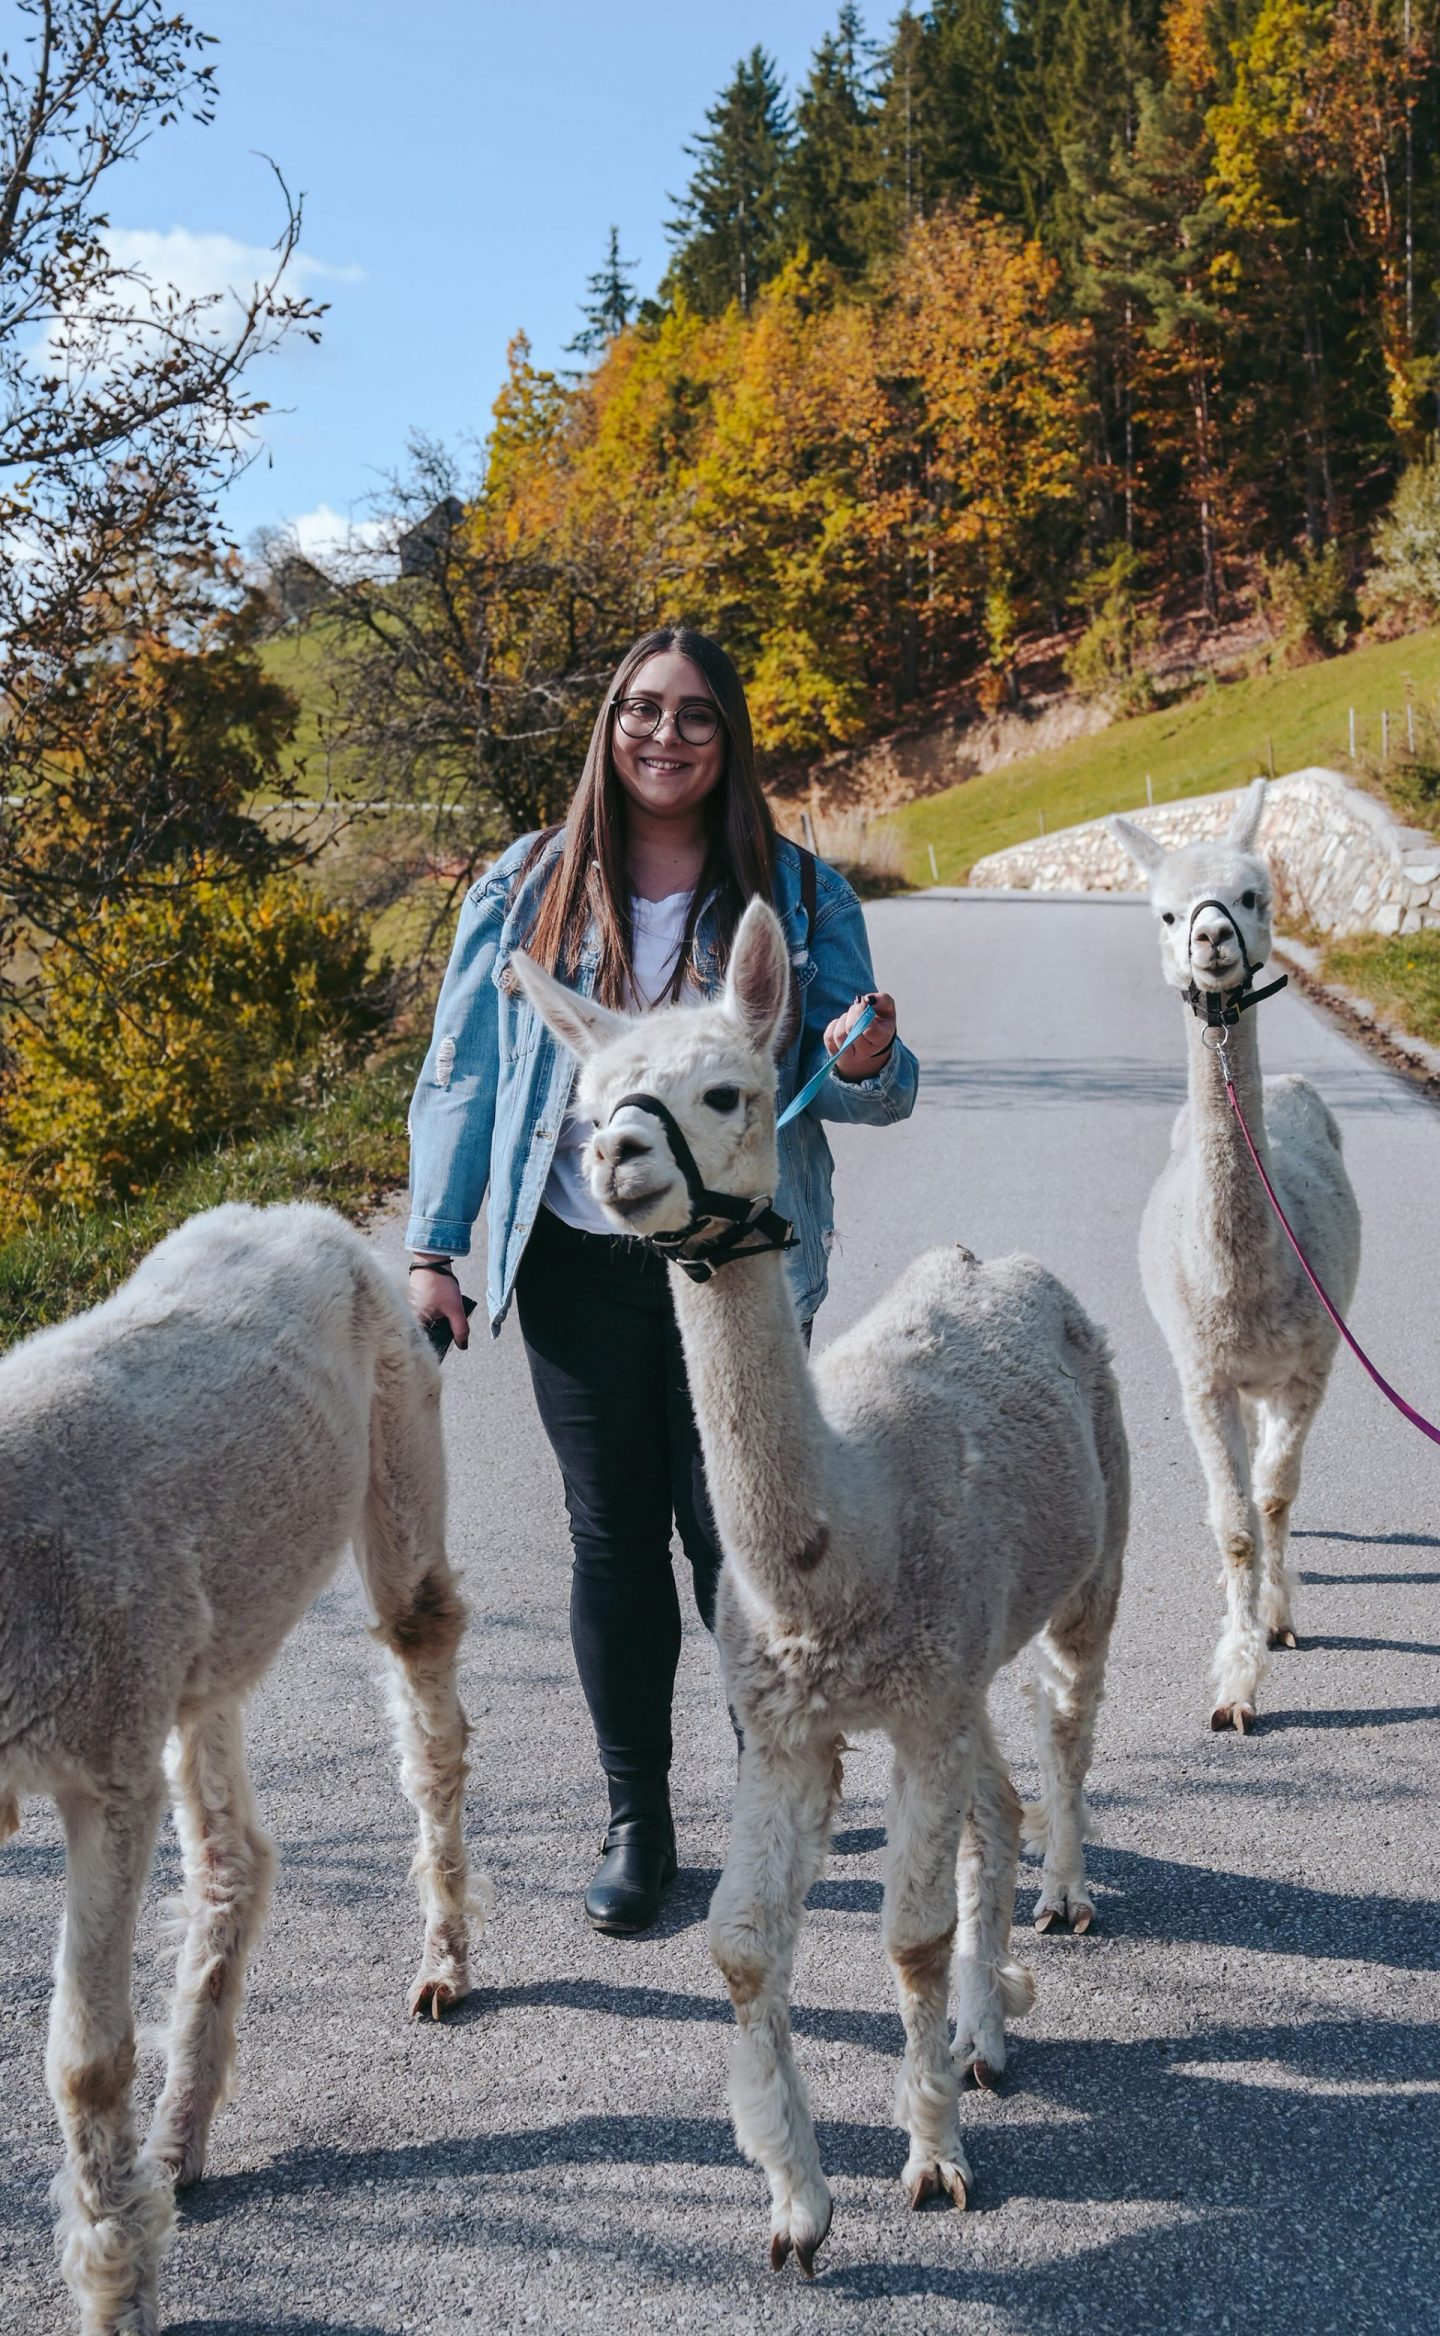 Walking with Alpacas, Koroska, Slovenia